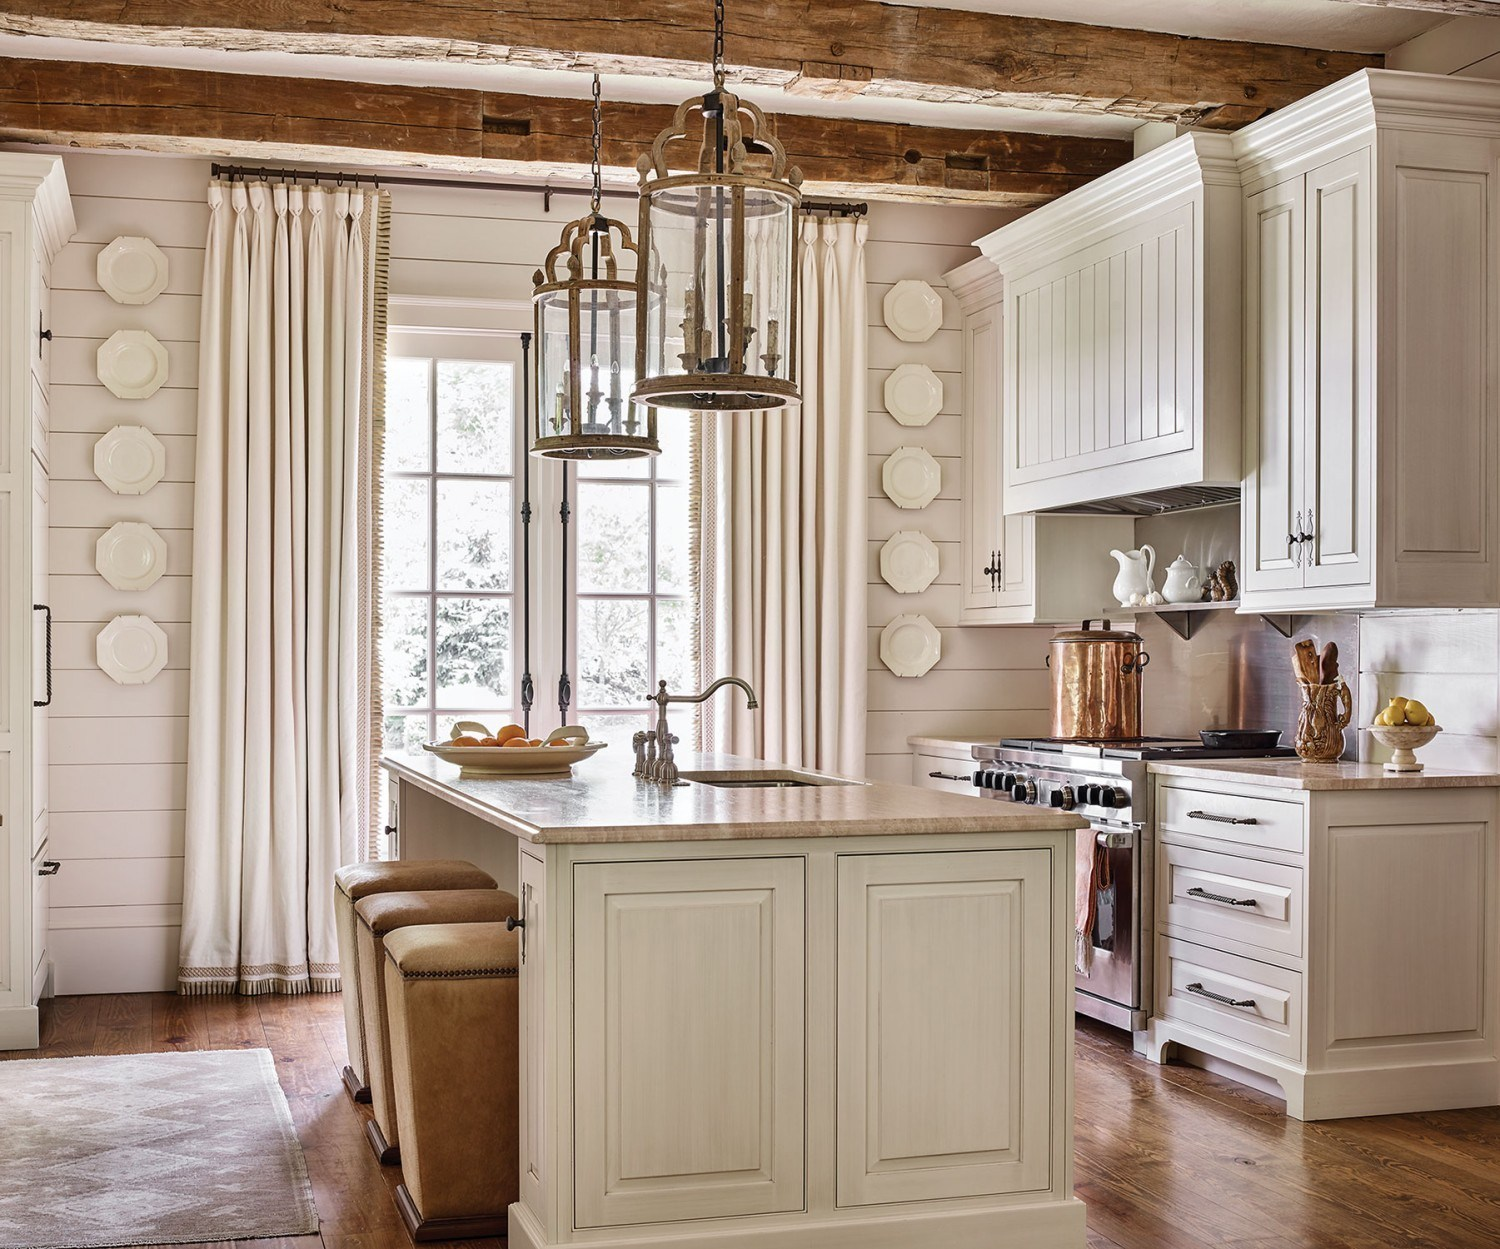 Kitchen Trends For 2020.Kitchen Trends 2020 Loretta J Willis Designer